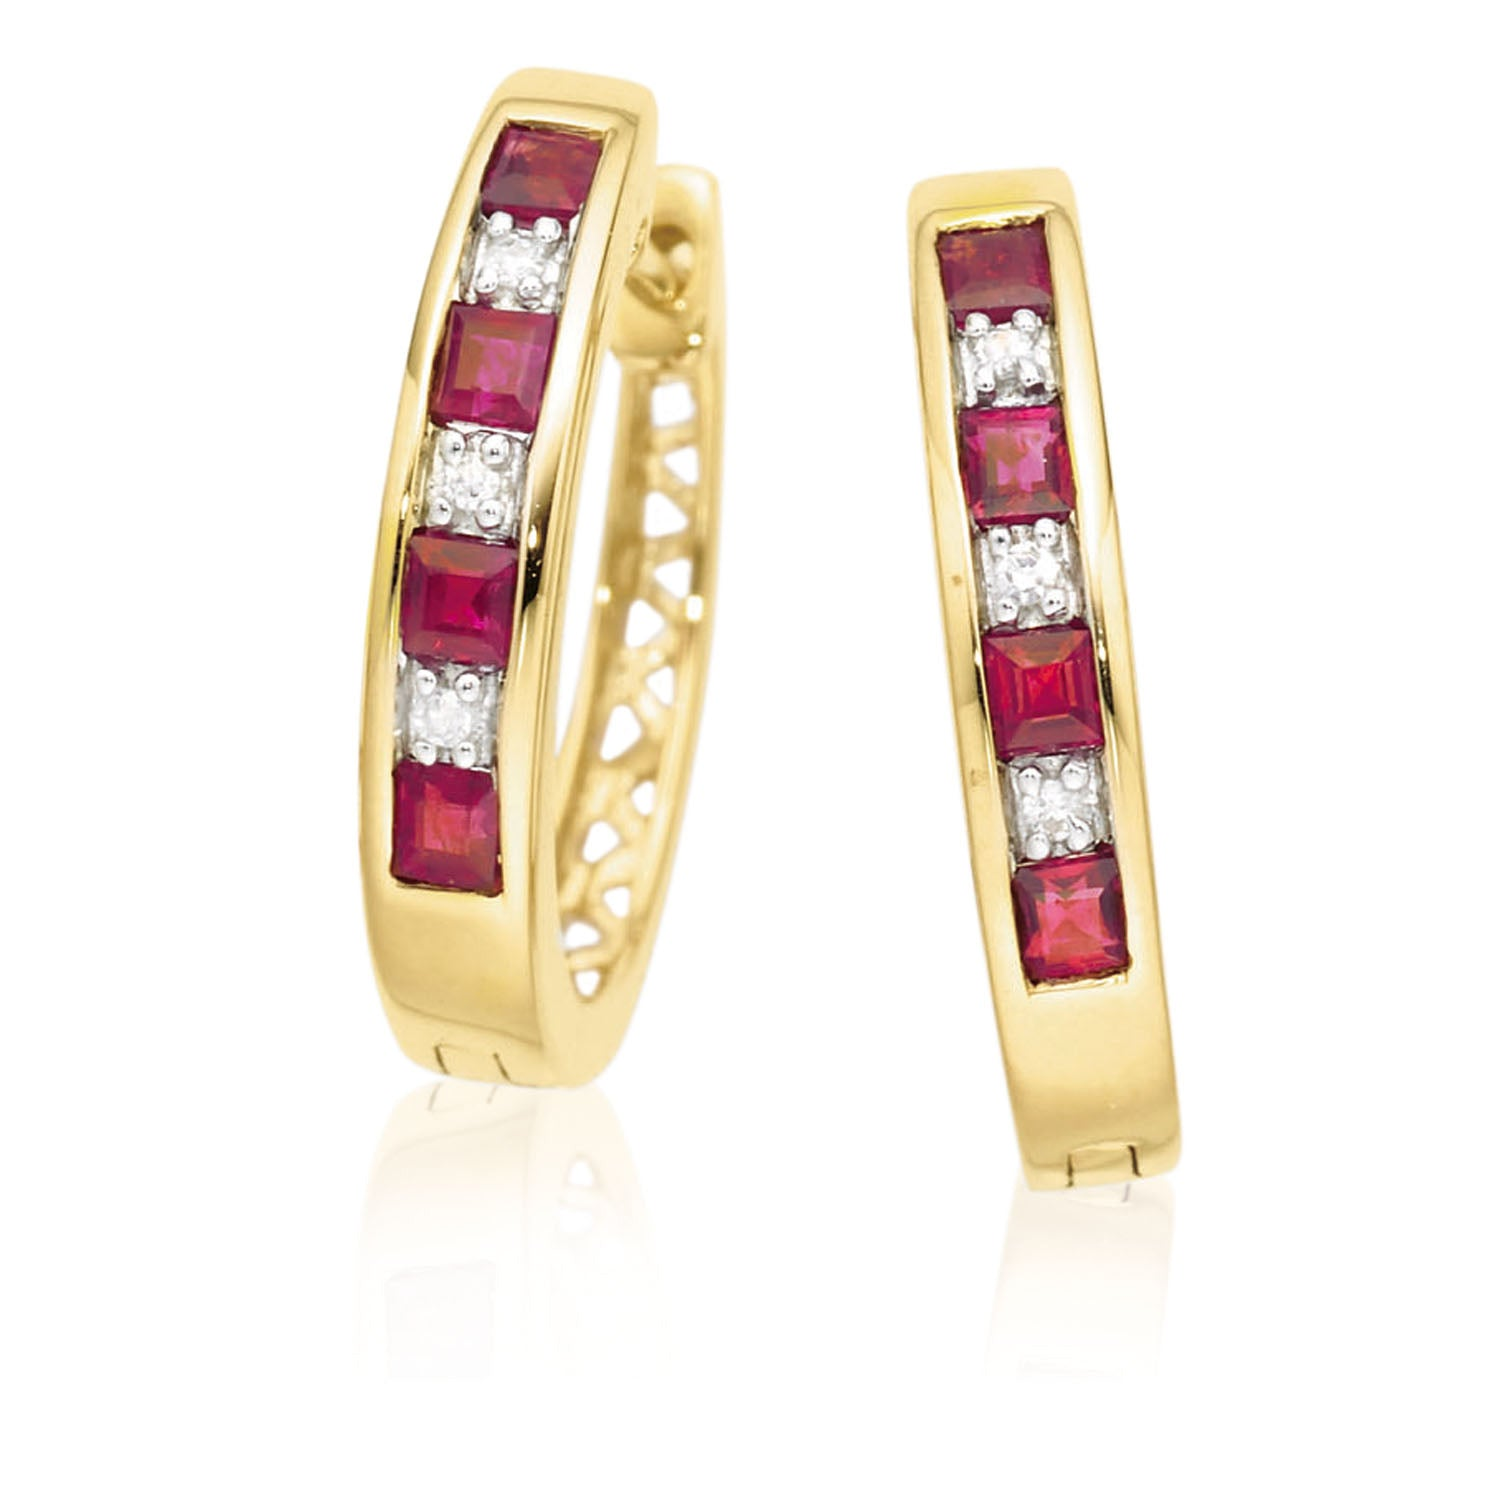 9ct Yellow Gold Round Brilliant Cut Ruby Diamond Set